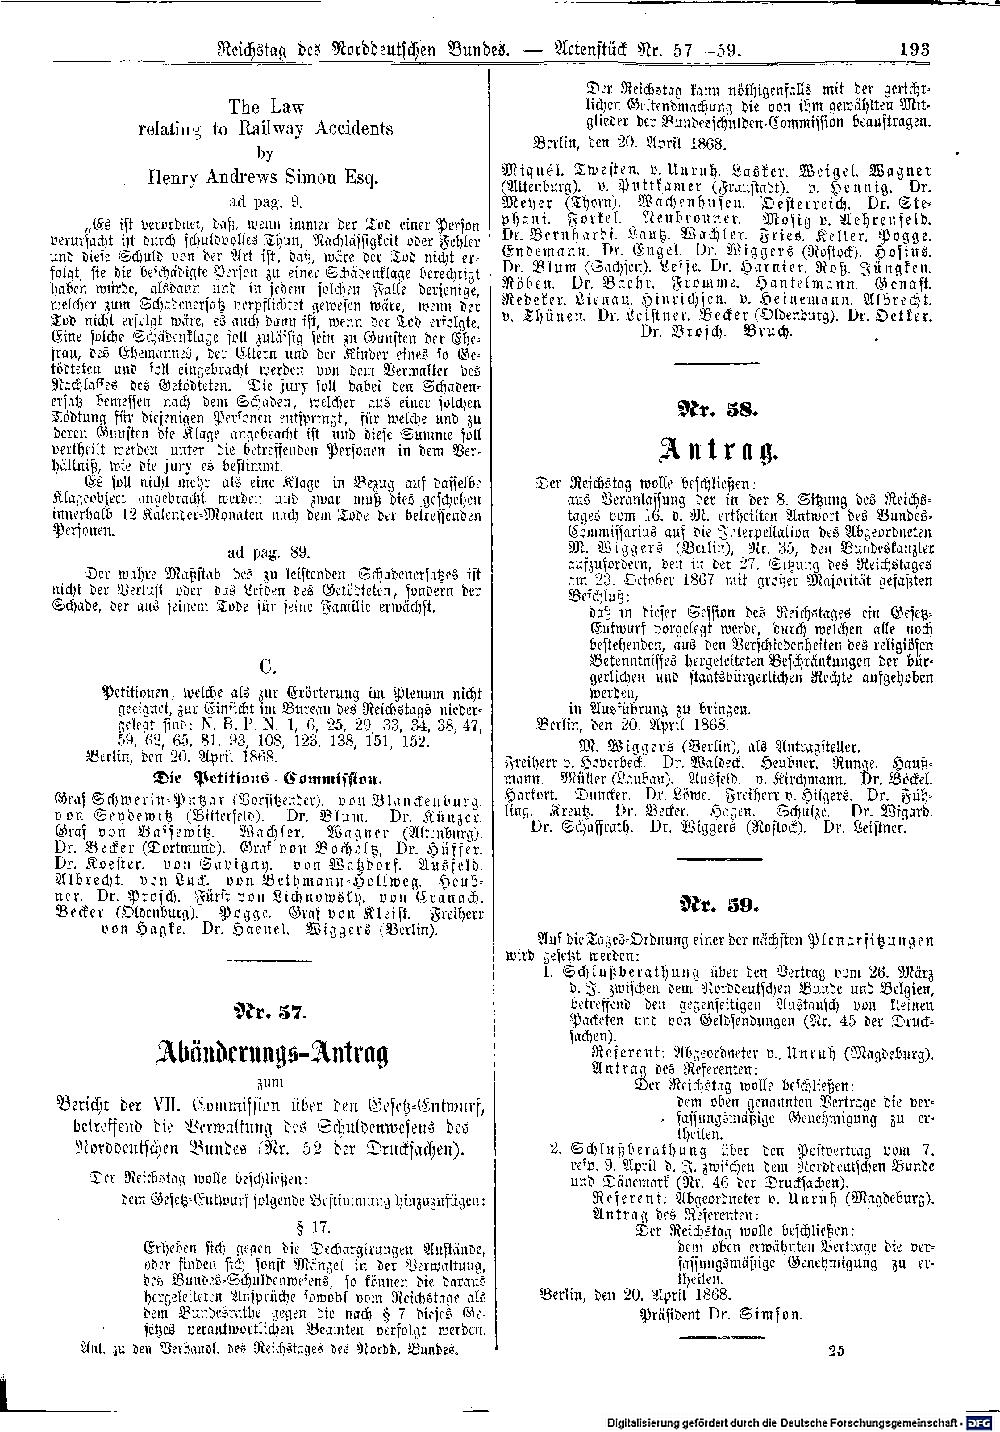 Scan of page 193